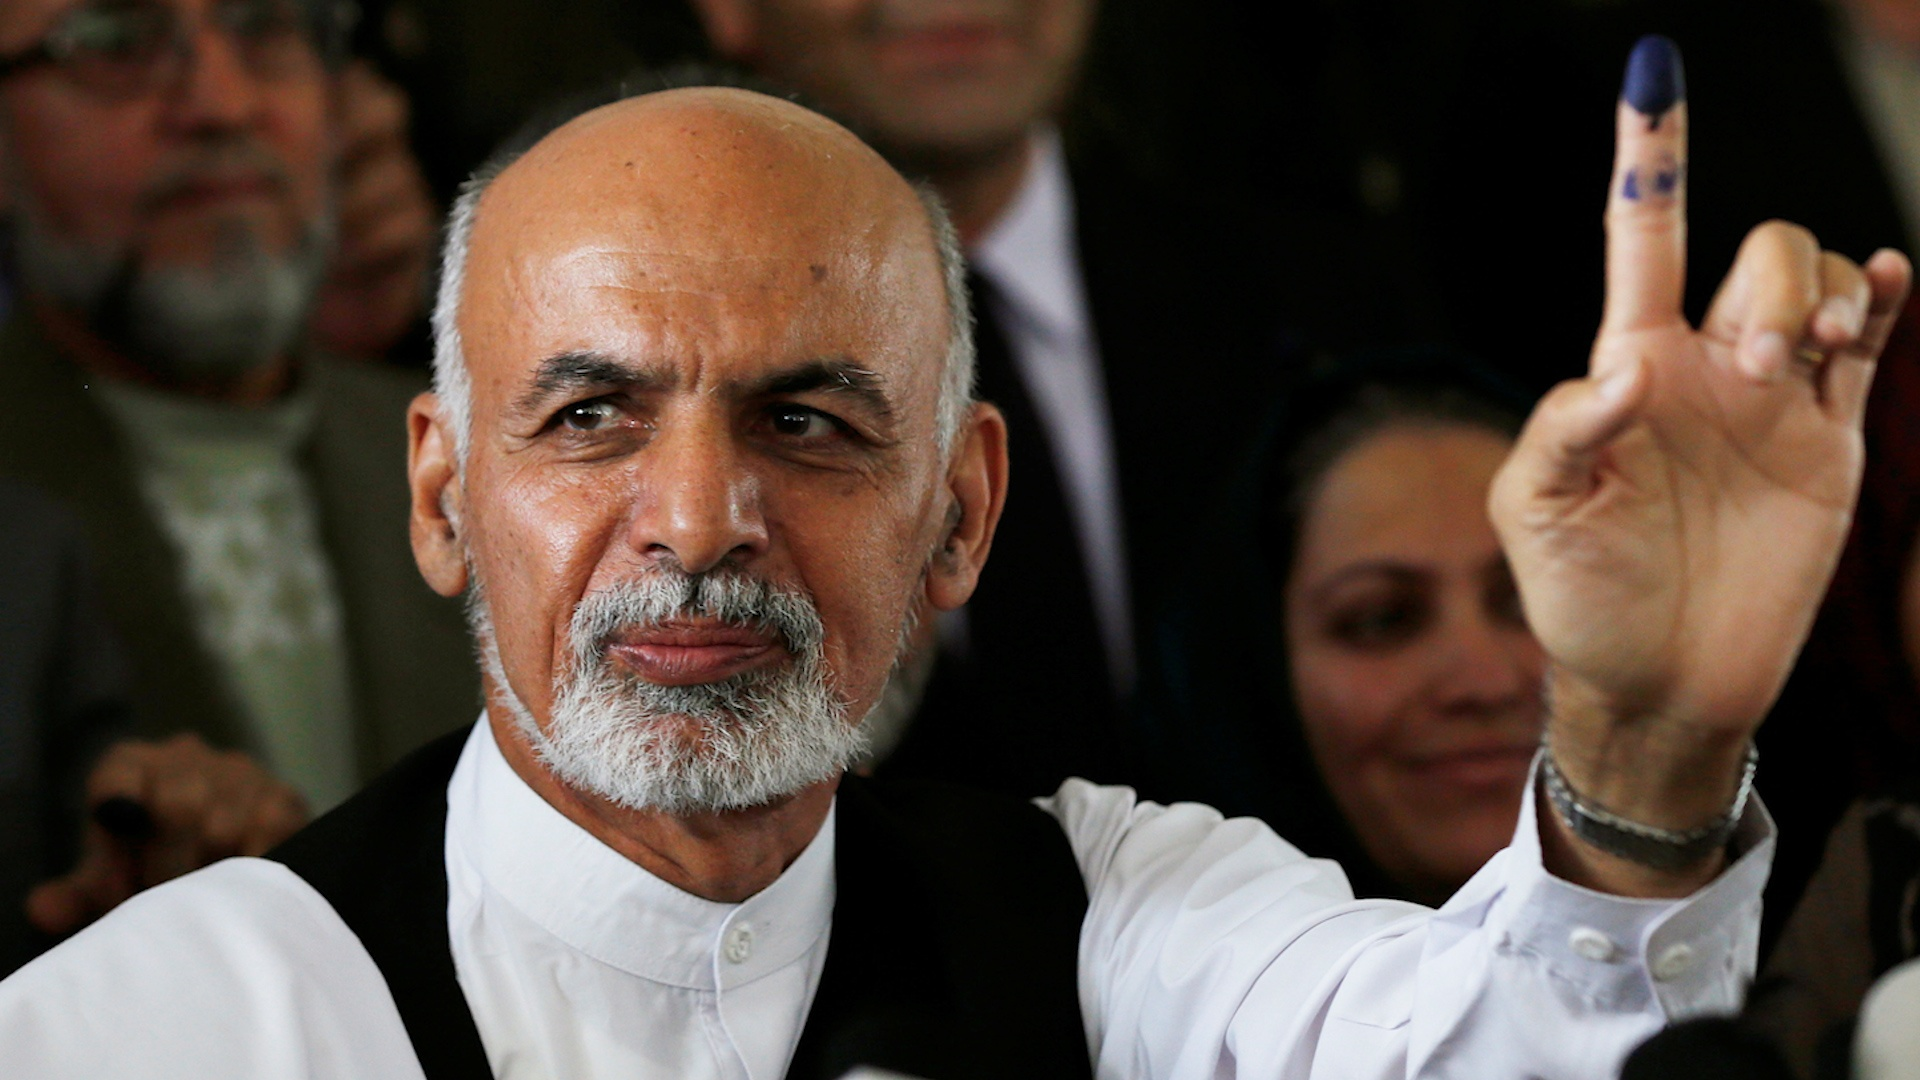 Russia says President Ghani left with a car full of money when the Taliban took over the Afghan capital - Photo 2